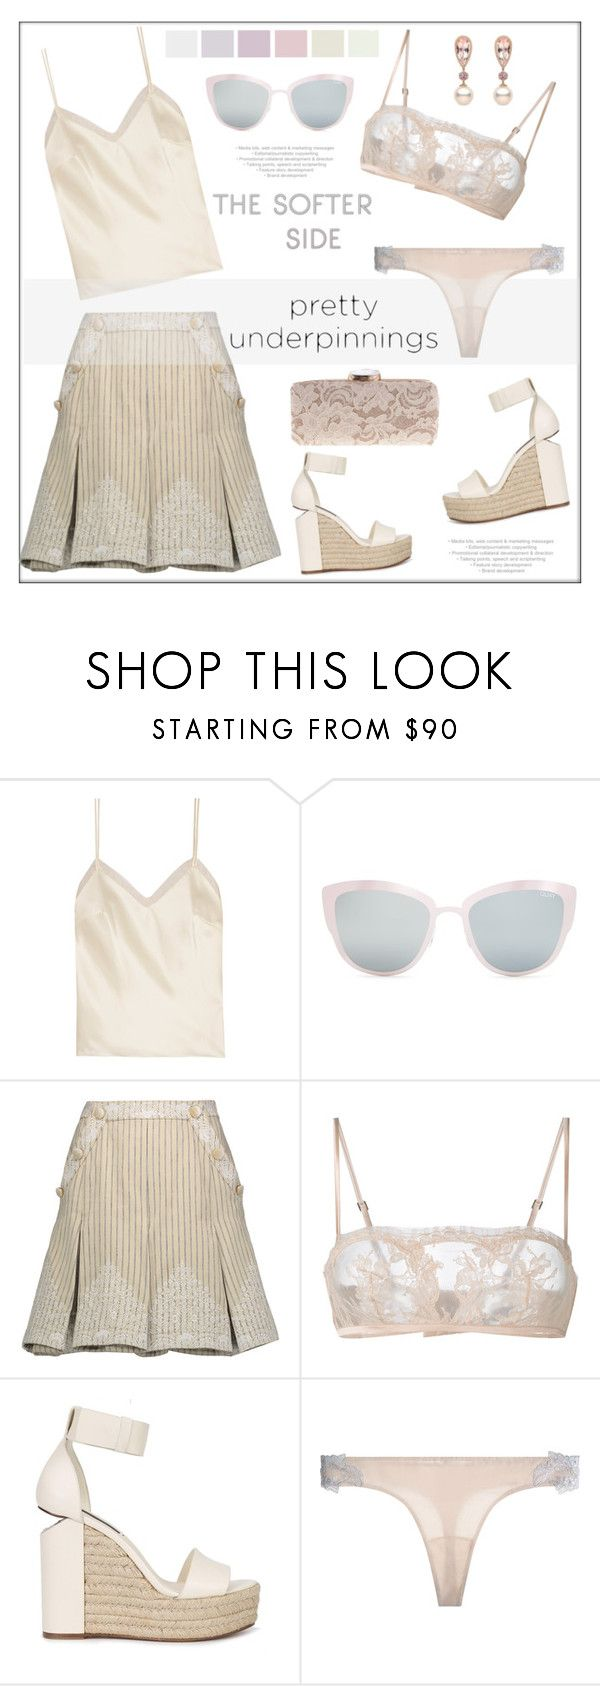 """""""The Prettiest Underpinnings"""" by pat912 ❤ liked on Polyvore featuring Halfpenny London, Topshop, Zimmermann, La Perla, Alexander Wang, WithChic, polyvoreeditorial and prettyunderpinnings"""